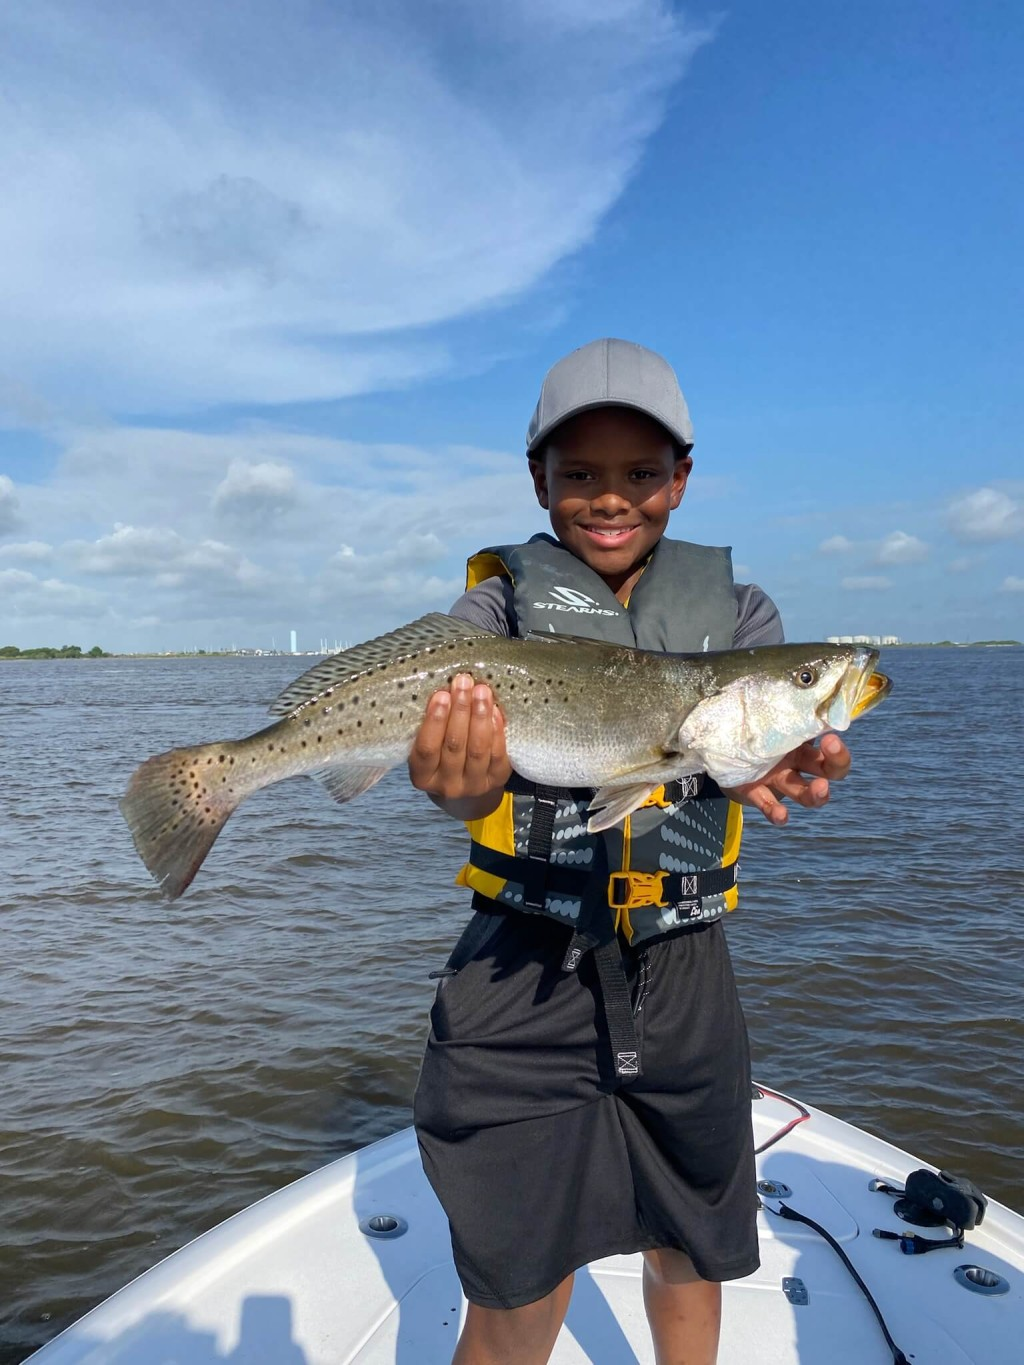 Full Day or Half-day Fishing Trip - 25' Contender   Captain Experiences